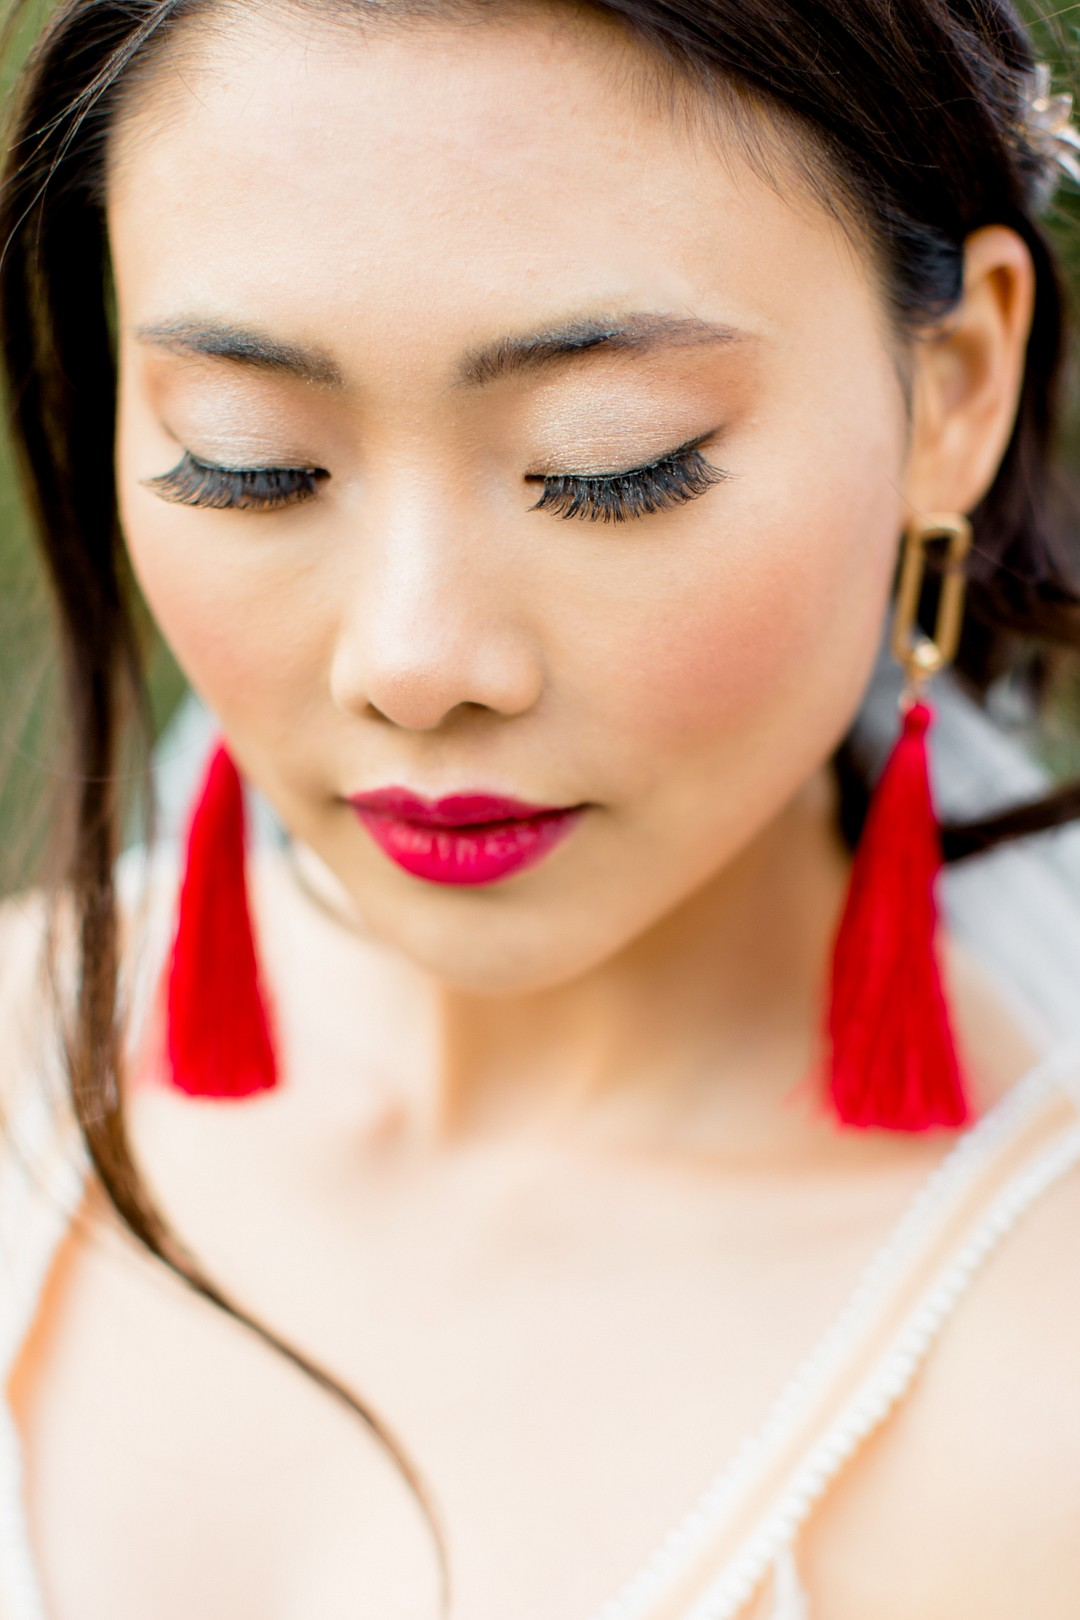 chinese bride with red tassel earrings and red lipstick